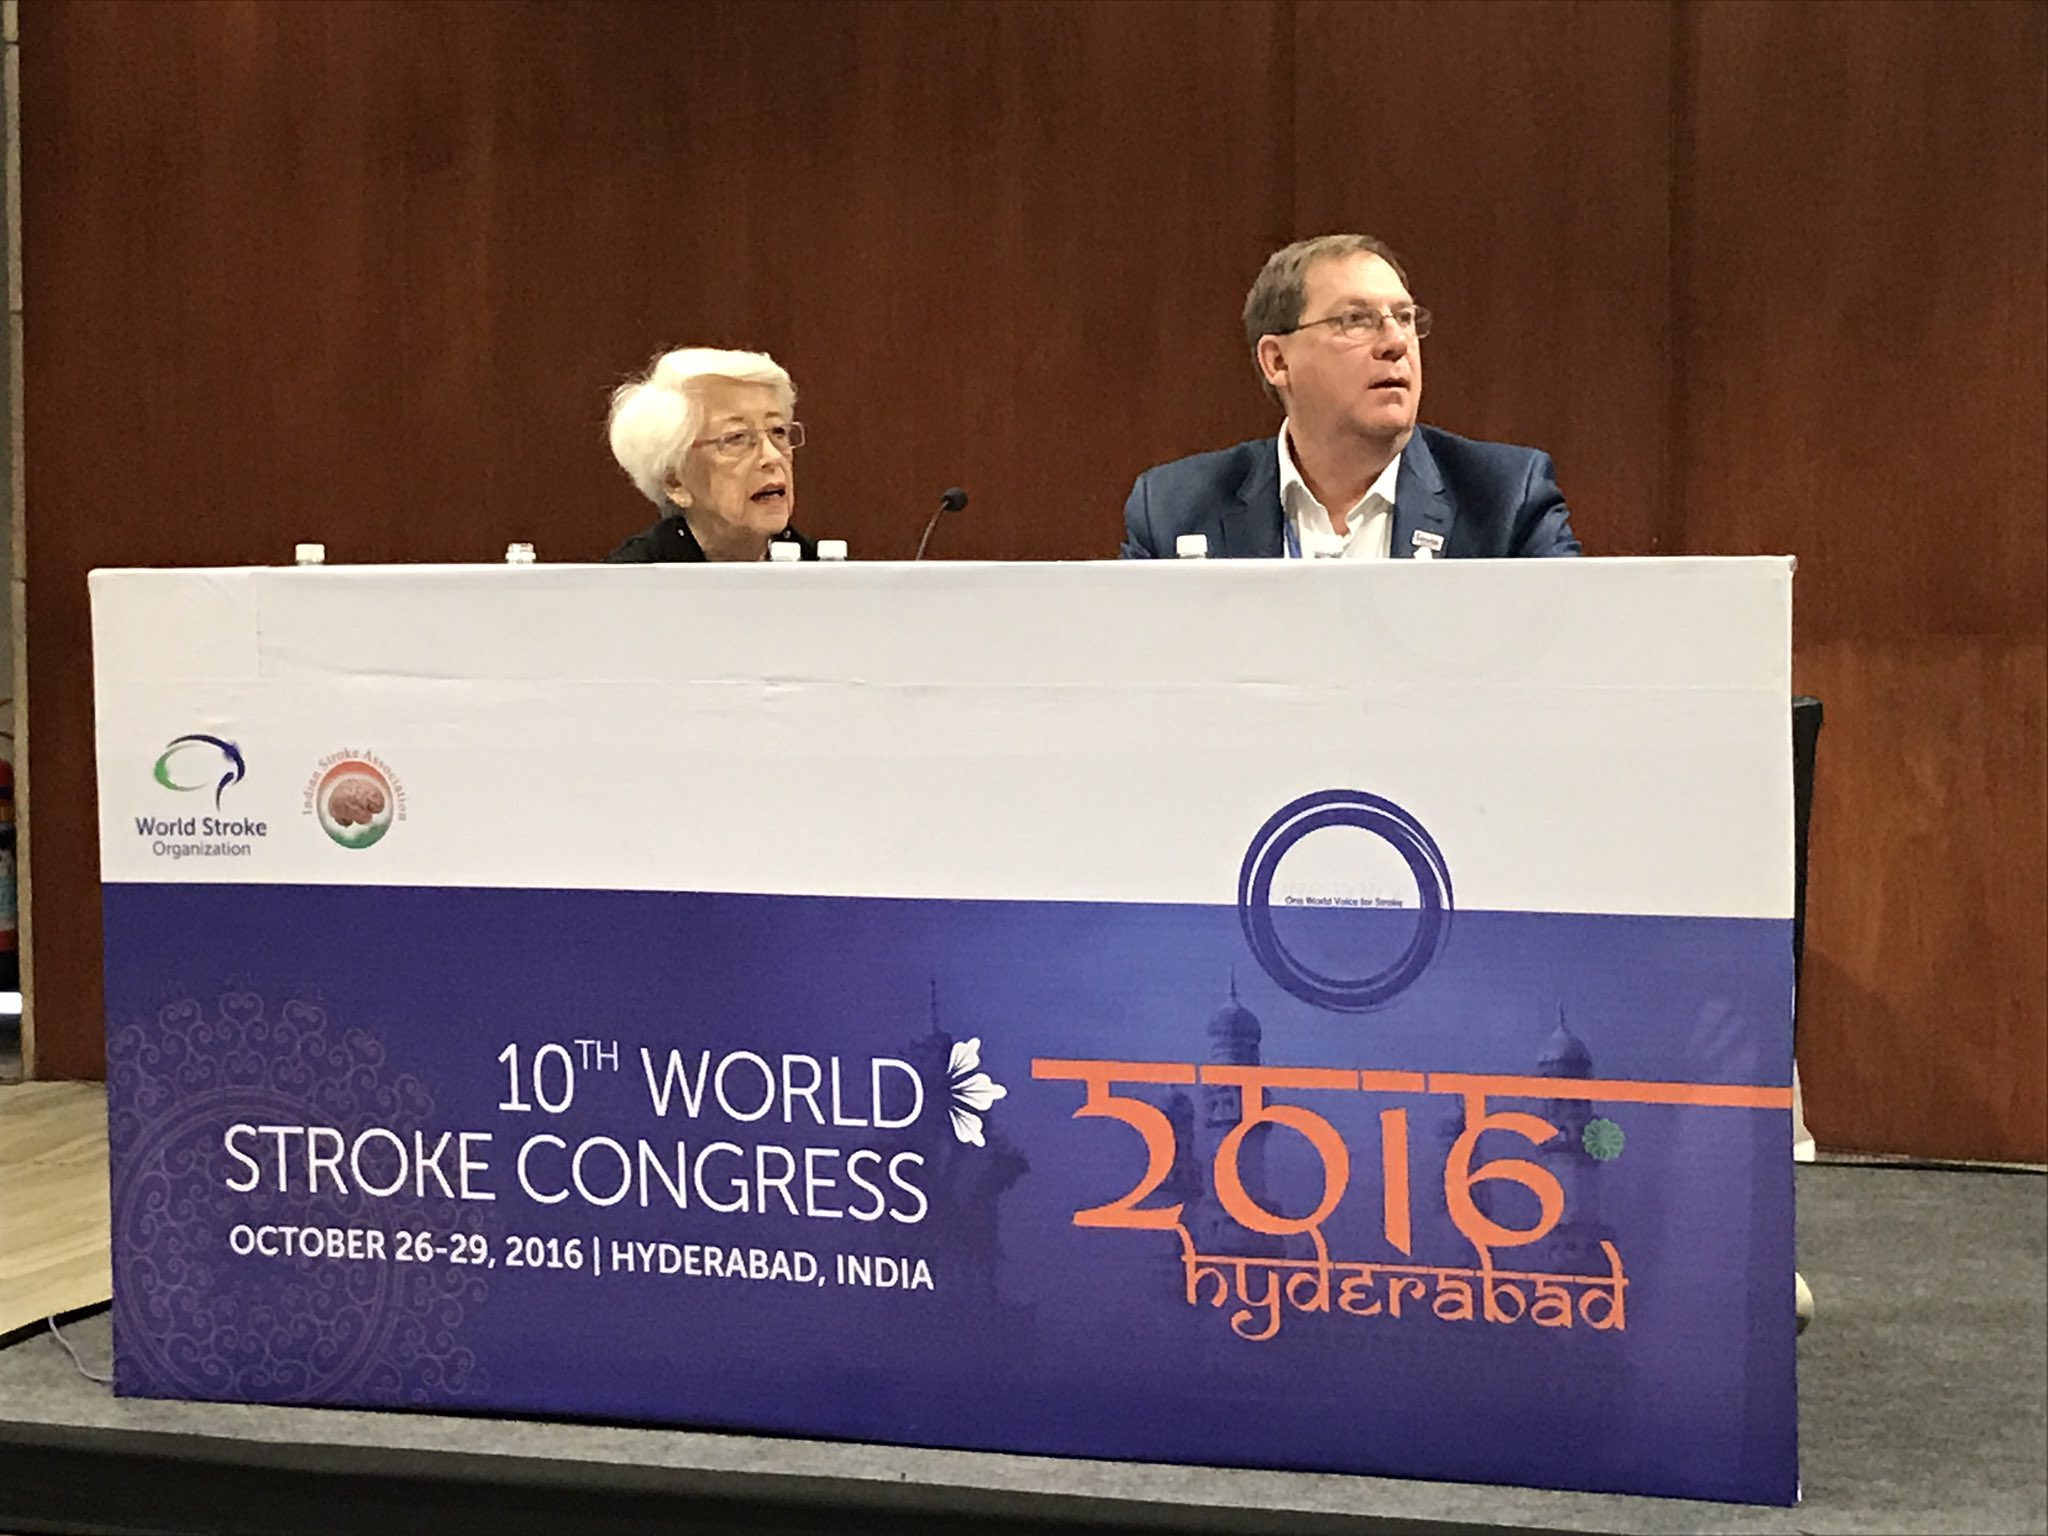 Self management in stroke at WSO Congress in Hyderabad, India